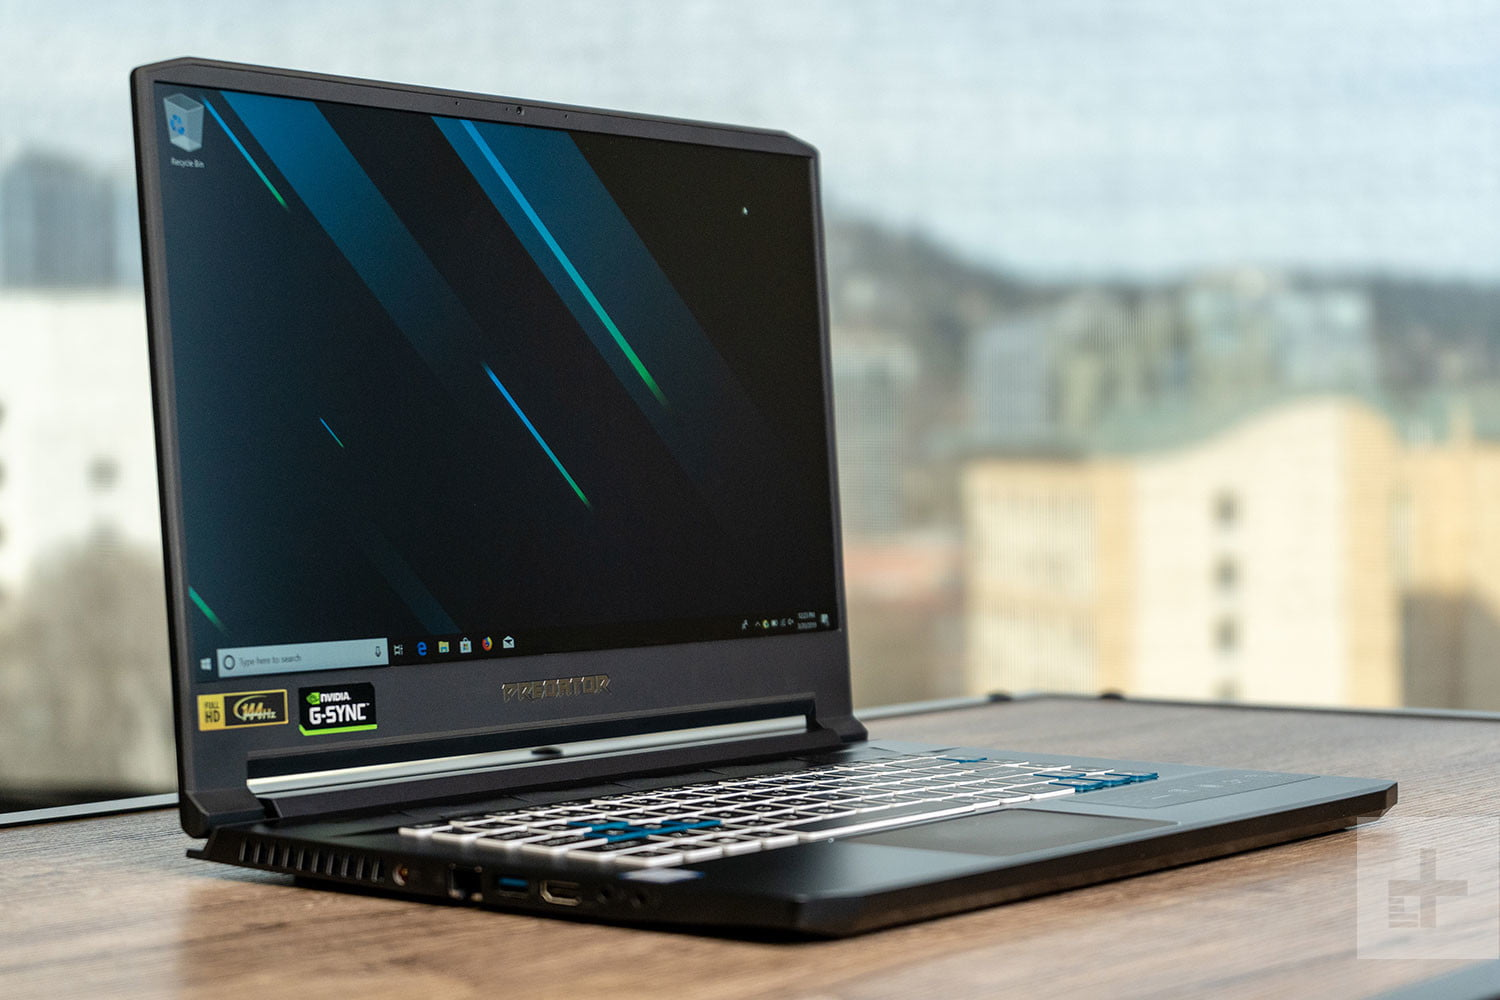 0104dcdfaf5 Amazon slashes prices on Acer laptops, desktops, monitors, and gaming gear  | Digital Trends